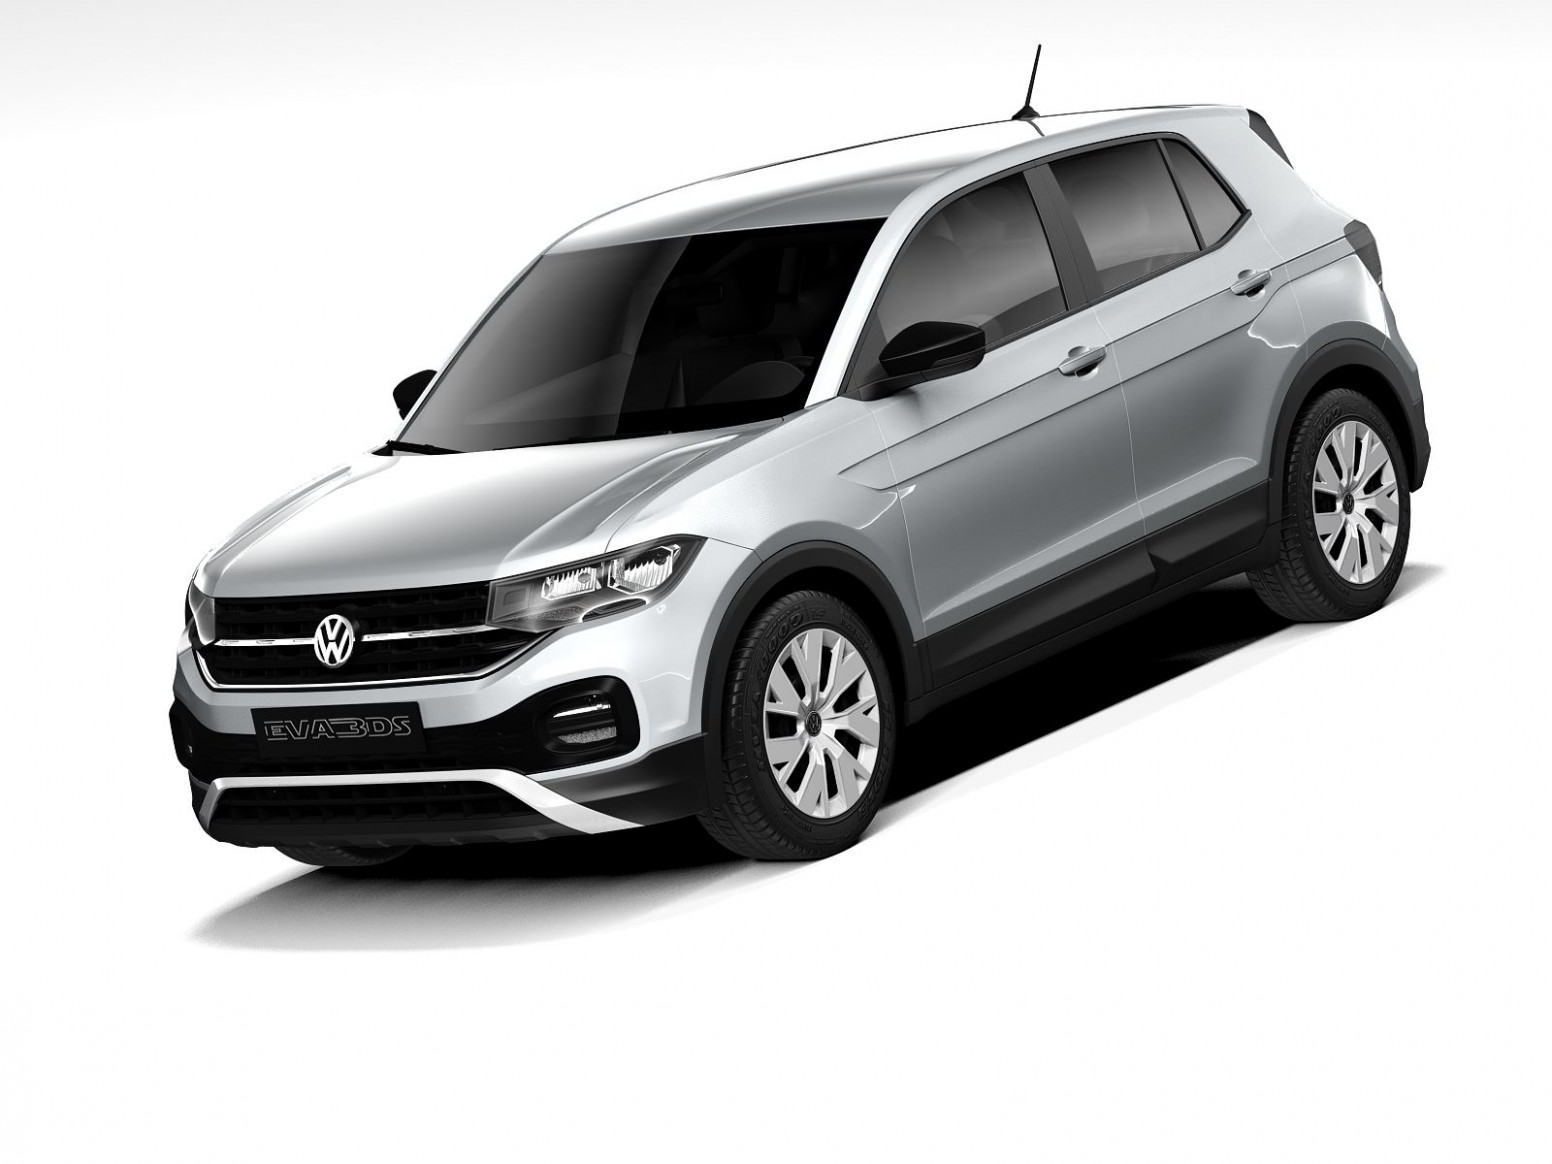 Volkswagen T-Cross Basic 6 | 2020 Volkswagen Cross